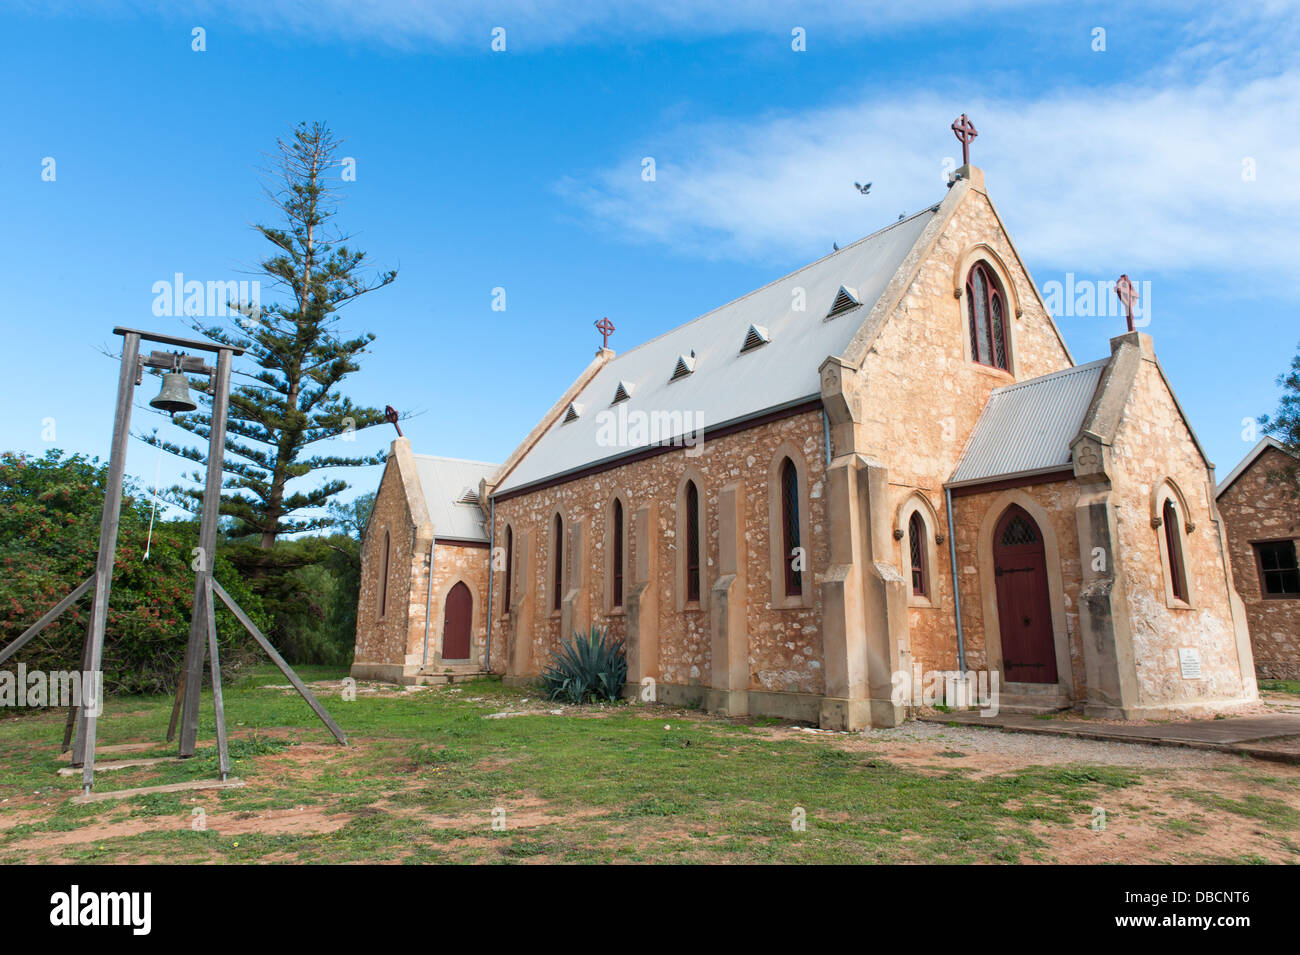 St. Peter's Church at the Central Greenough Historic Settlement displaying heritage buildings by early settlers, - Stock Image